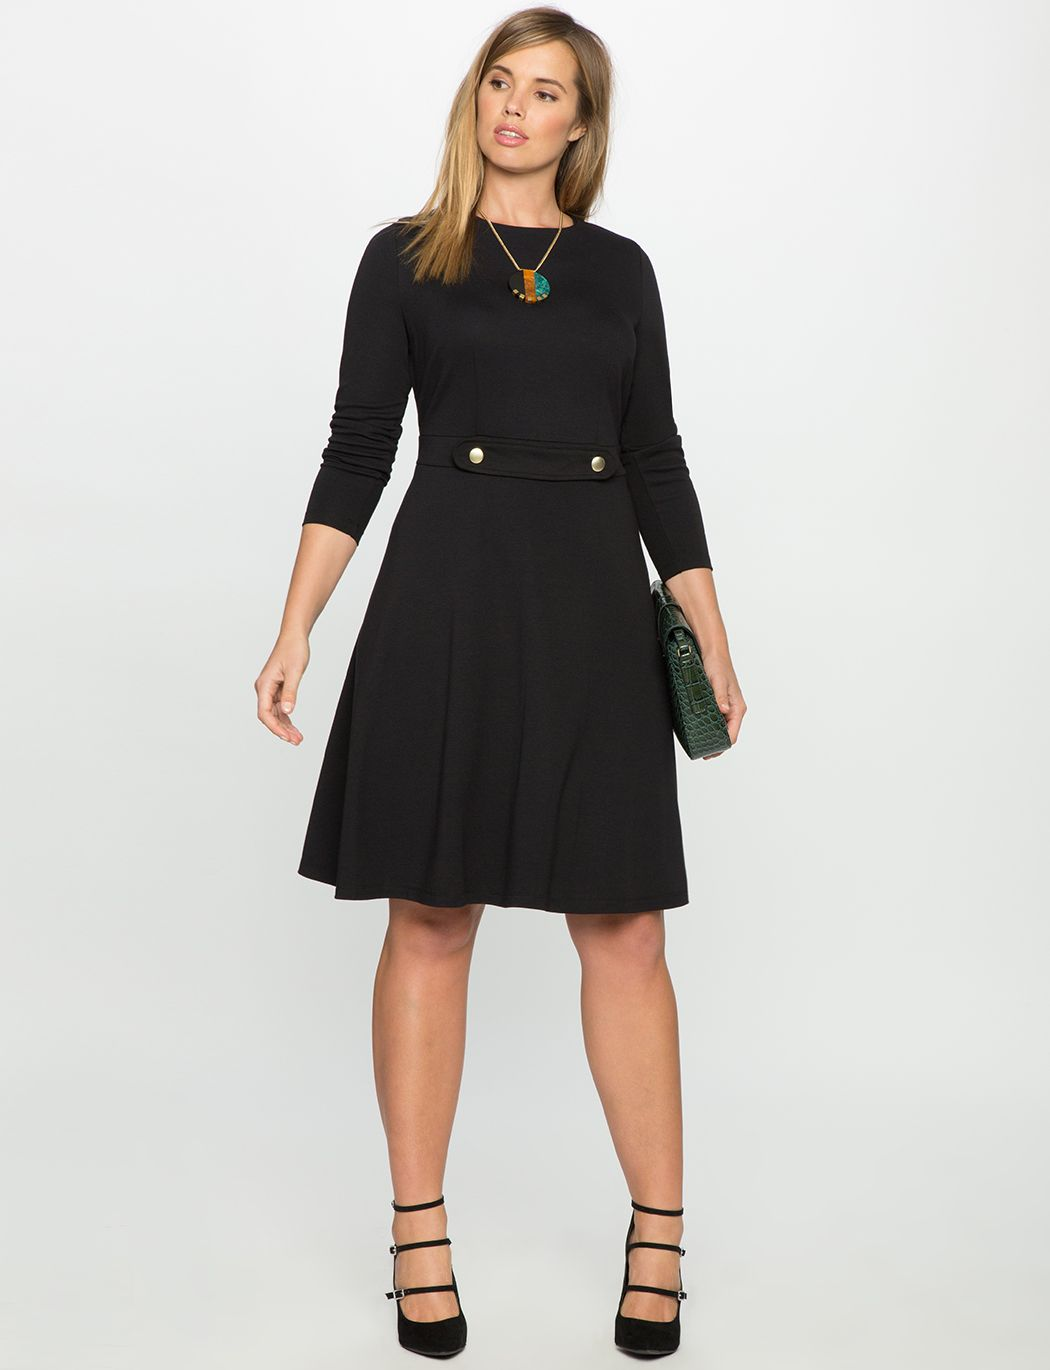 28++ Black long sleeve fit and flare dress ideas in 2021